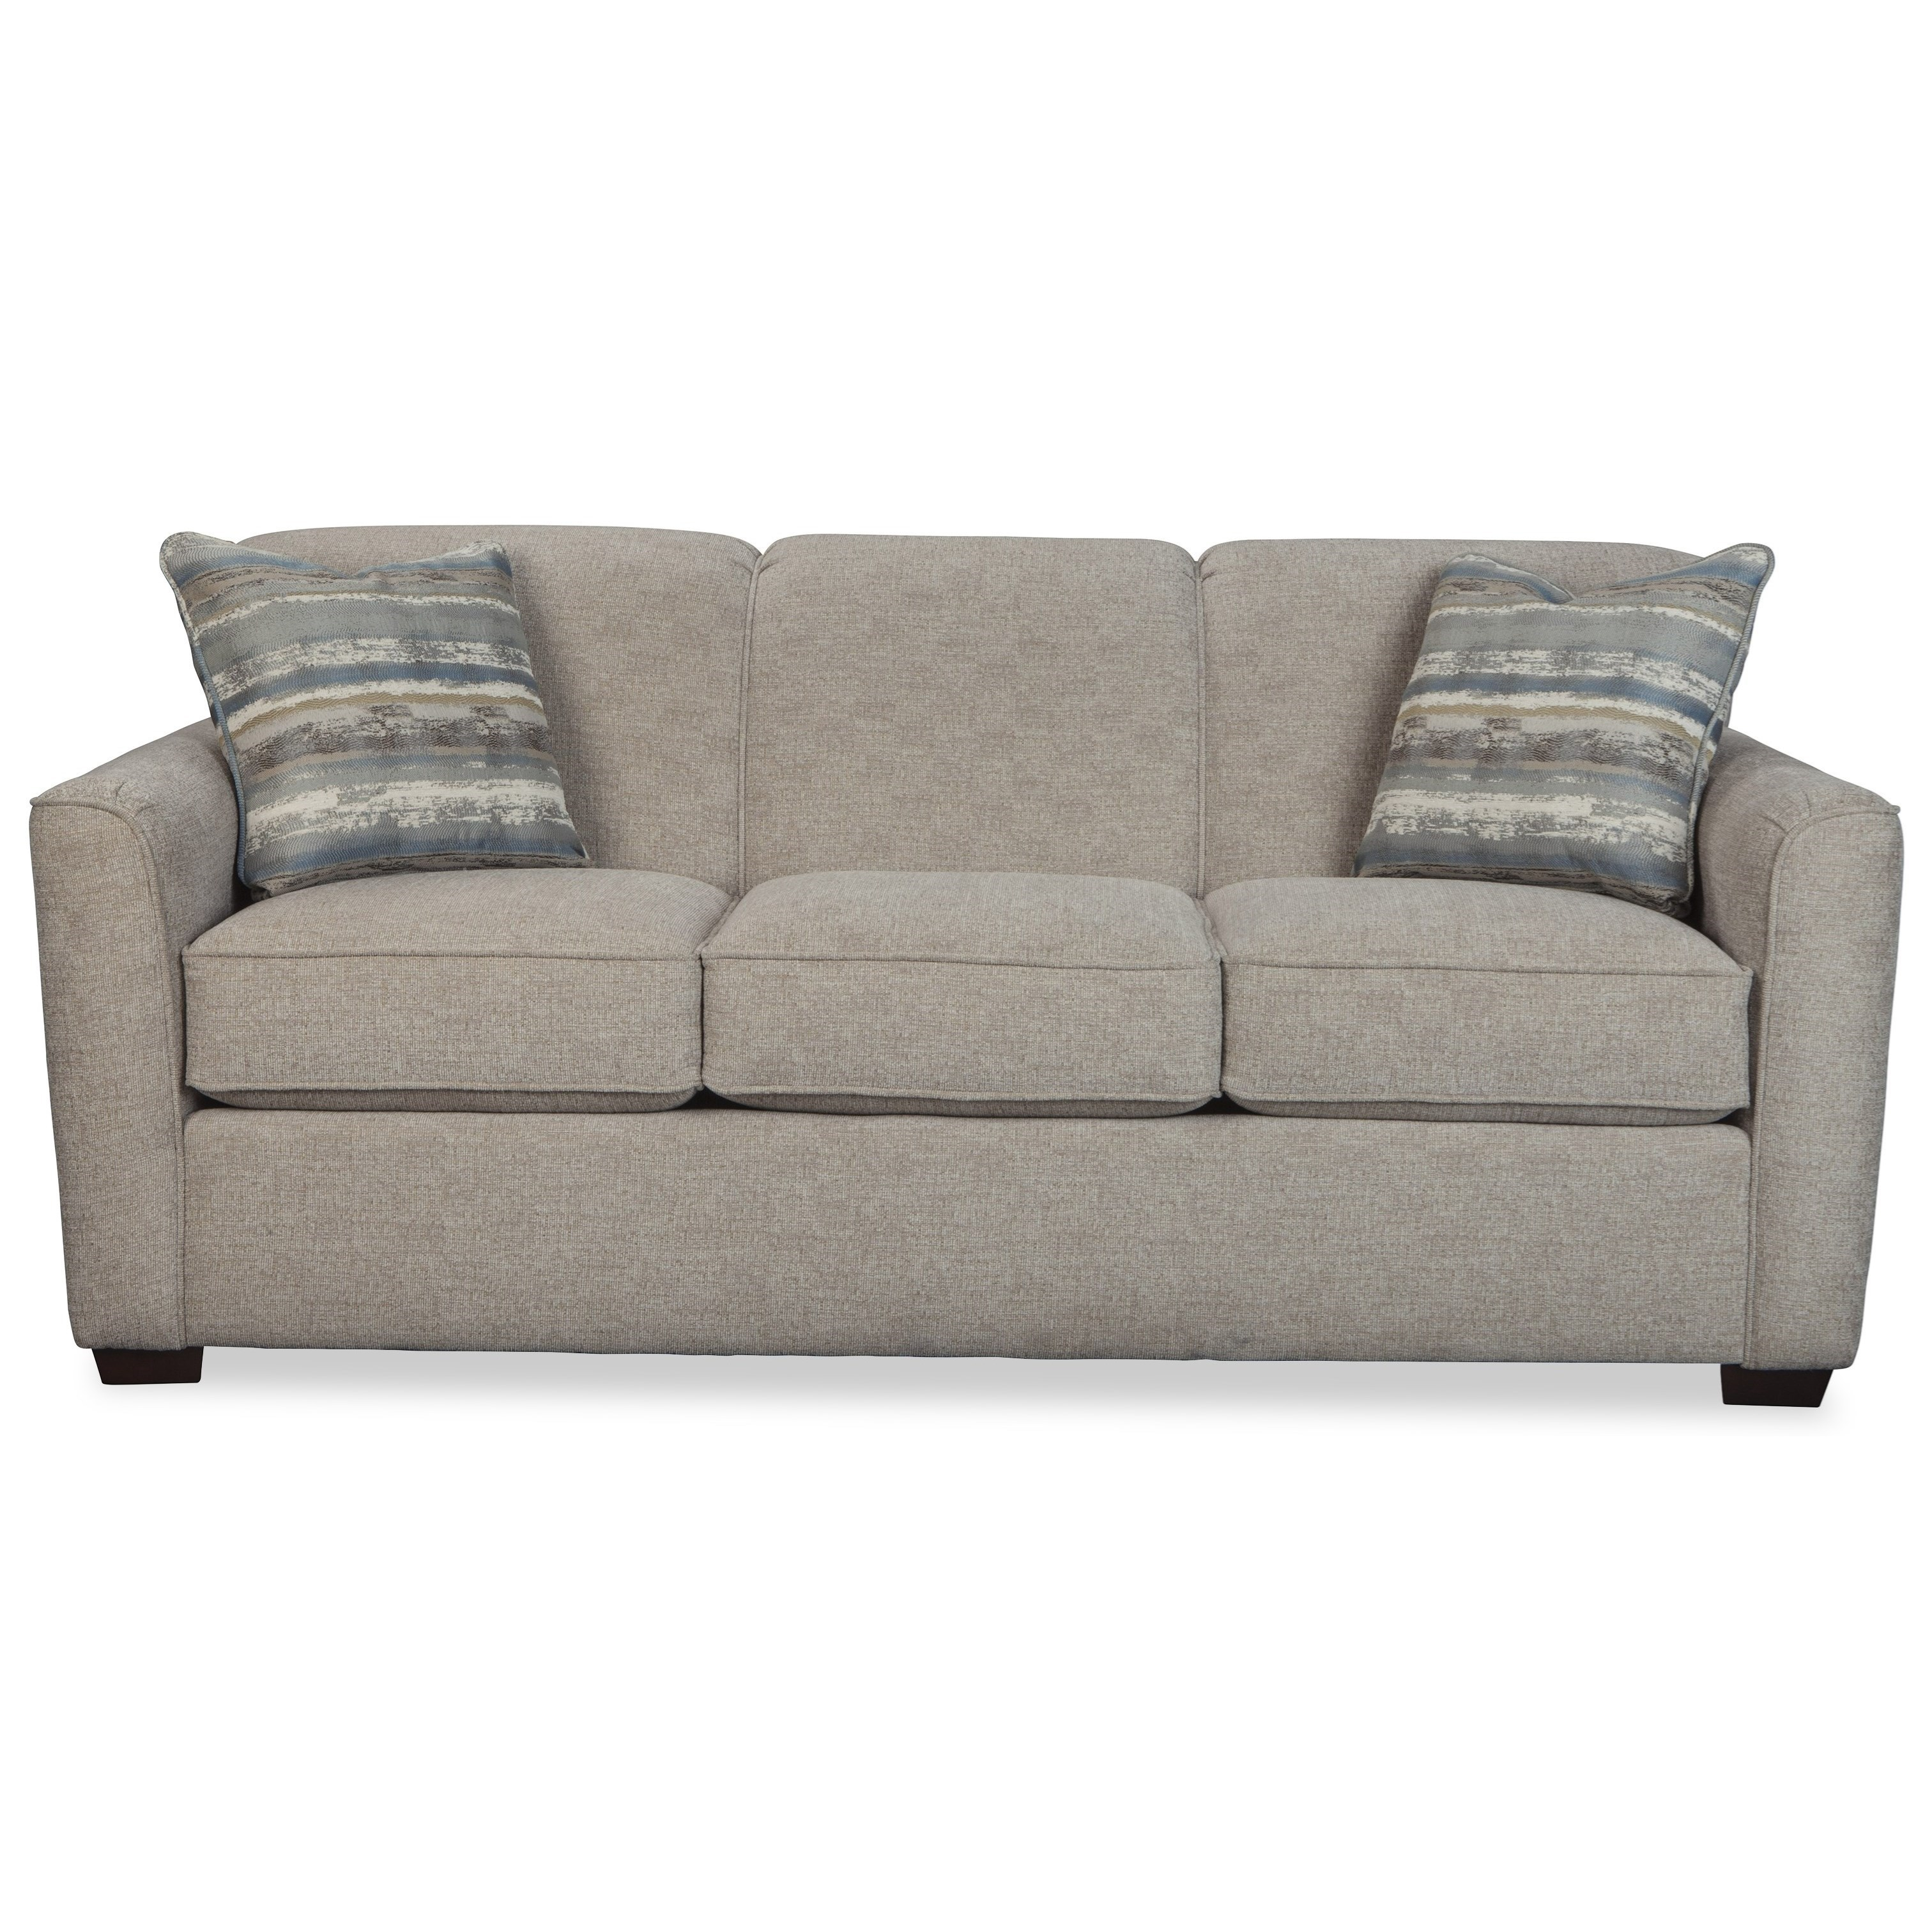 Memory Foam Sleeper Sofa: Contemporary Sleeper Sofa With Flared Track Arms And